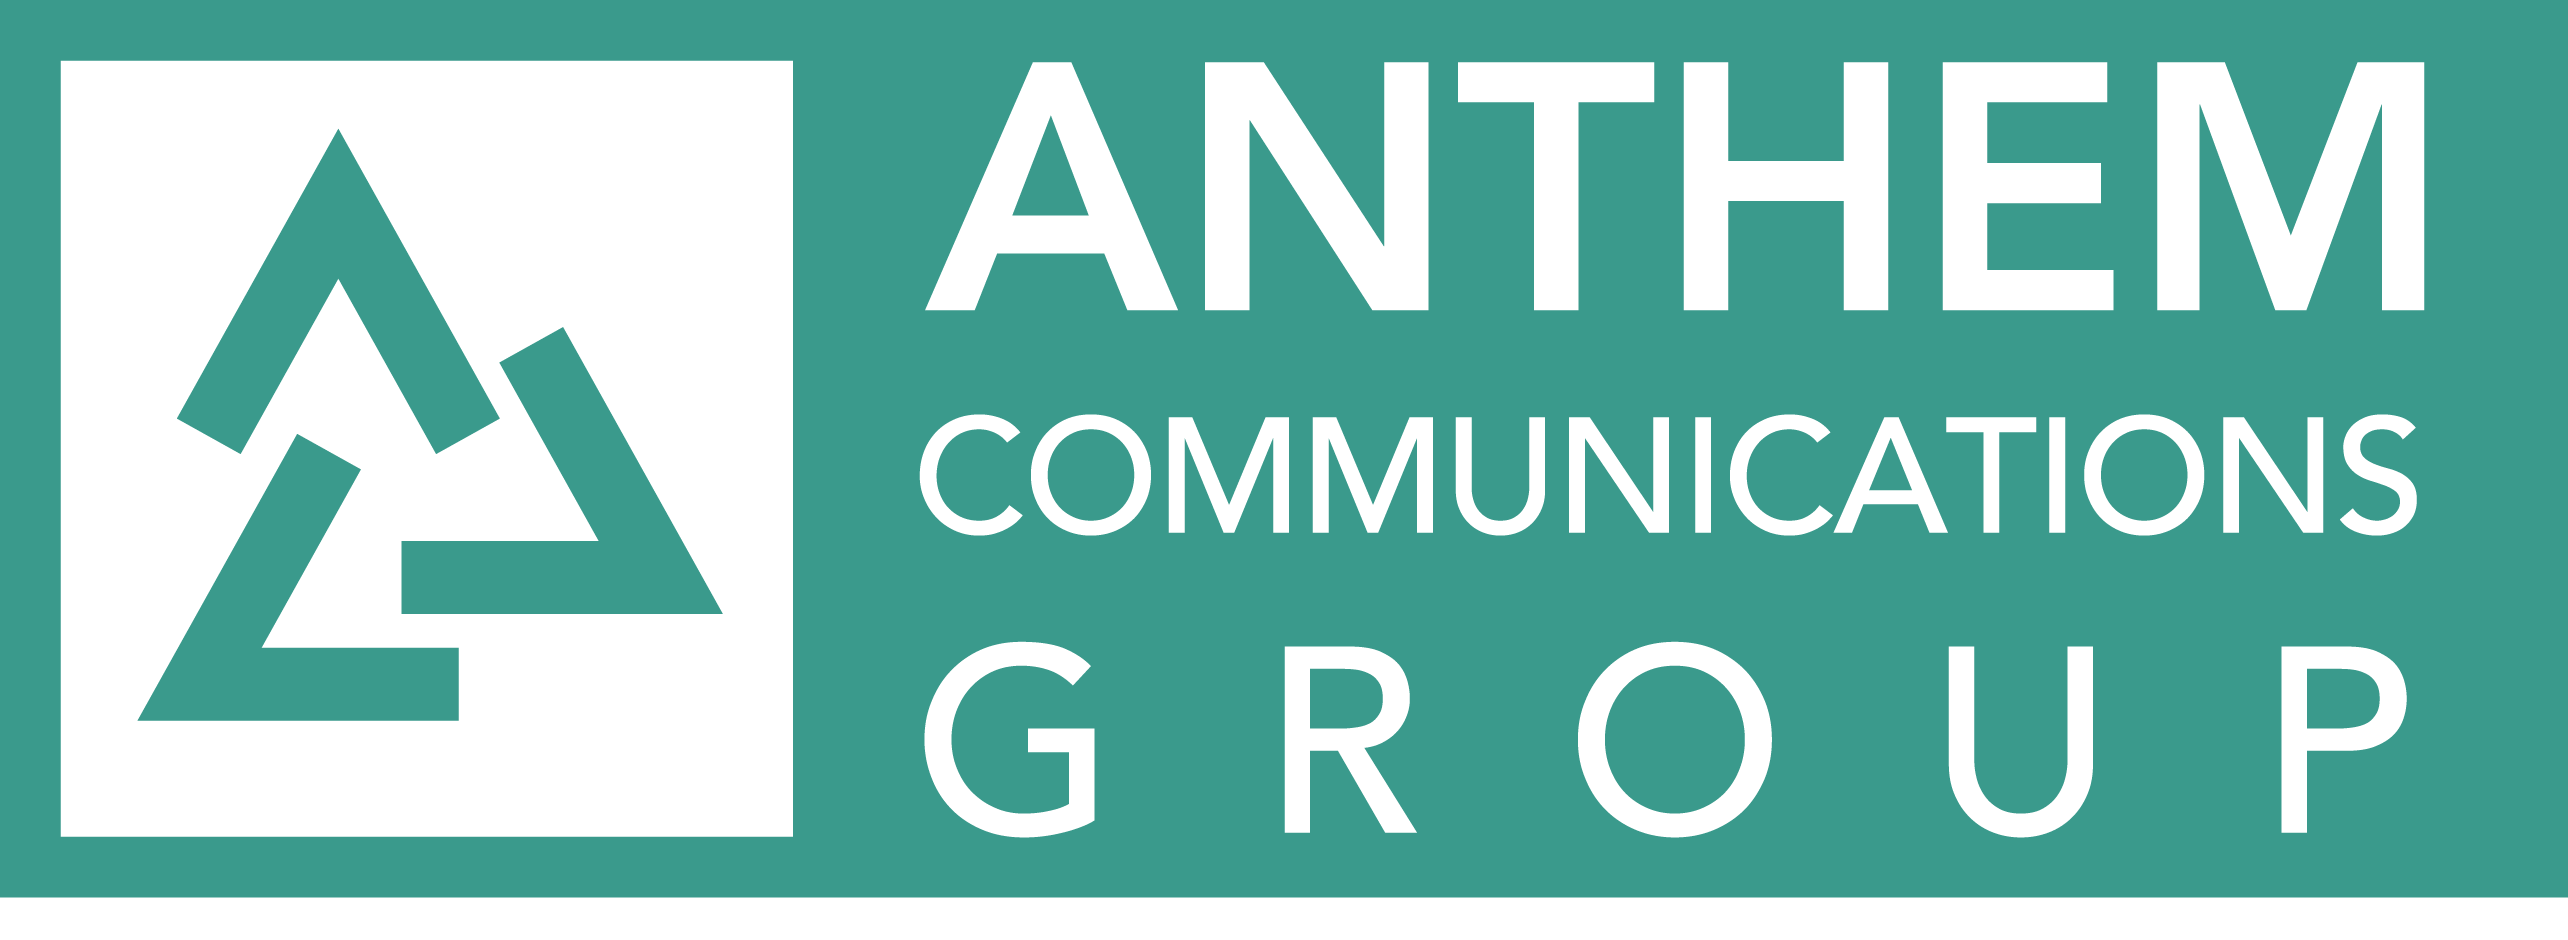 ANTHEM COMMUNICATIONS GROUP